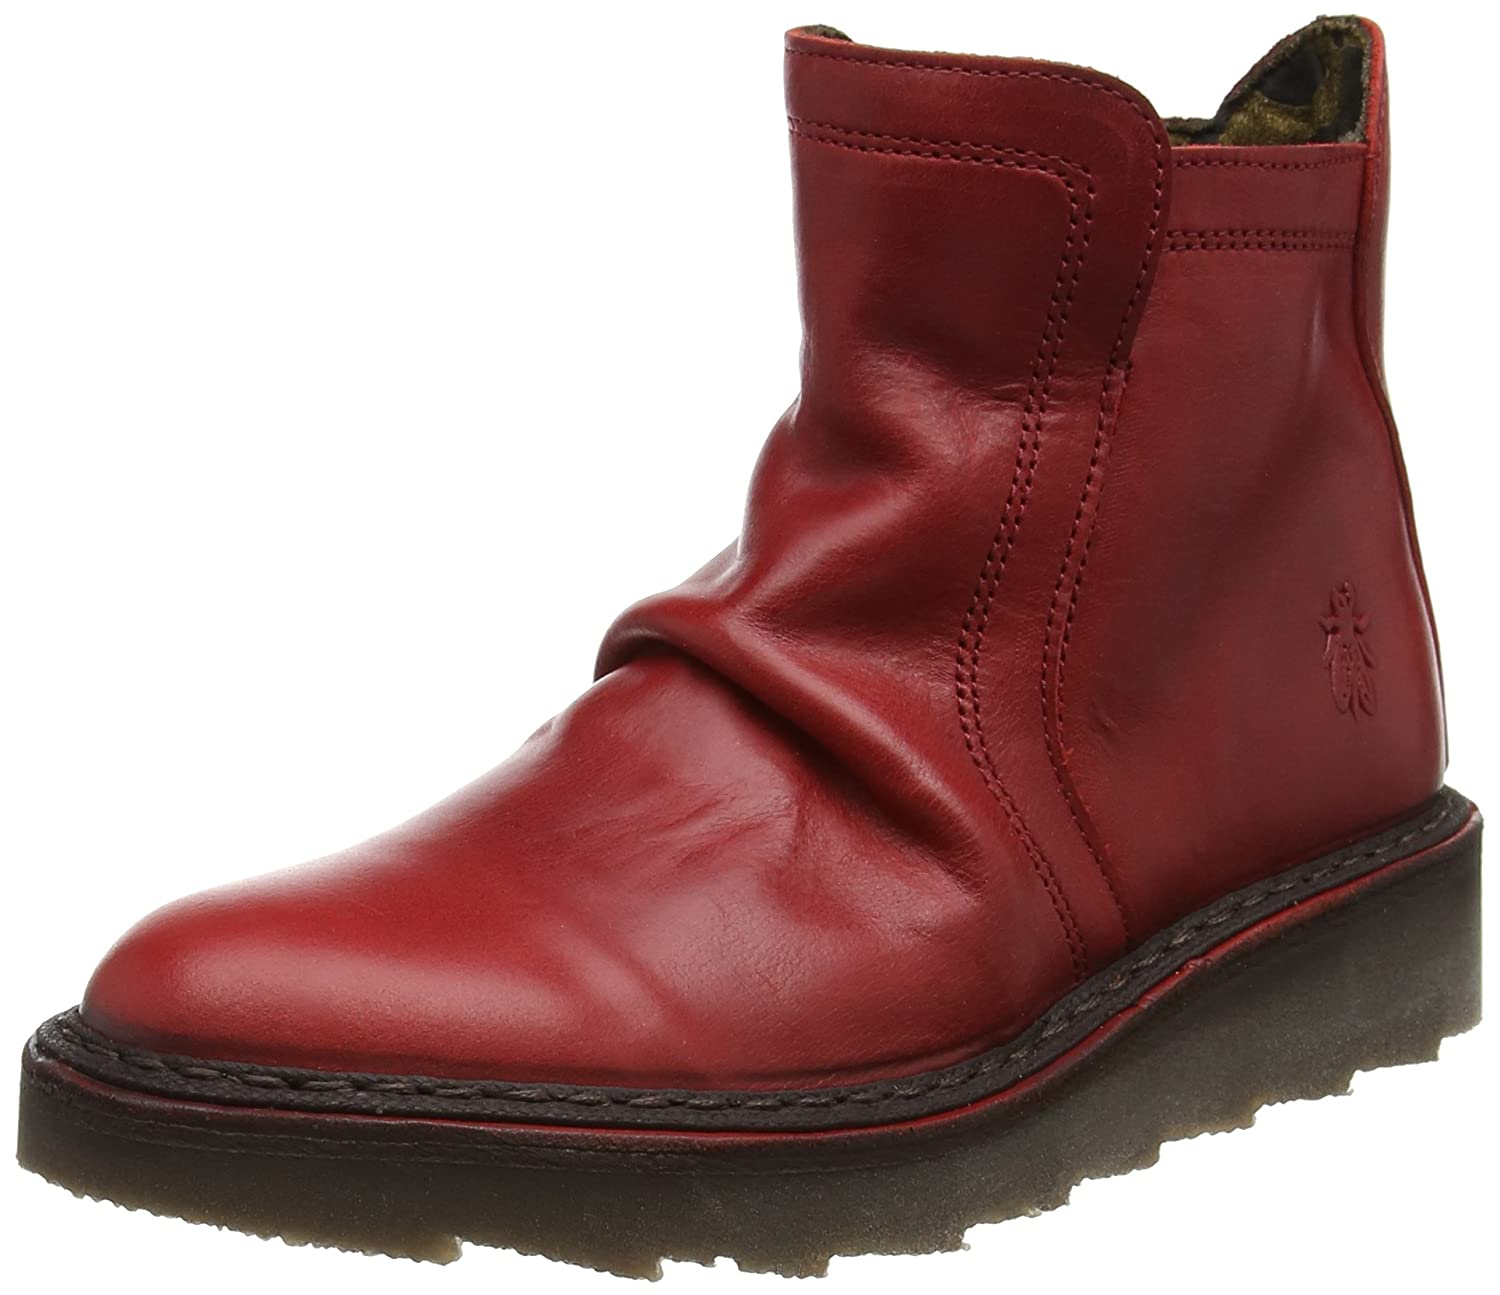 Fly London Adit951fly, Botas Desert para Mujer37 EU|Rojo (Red)